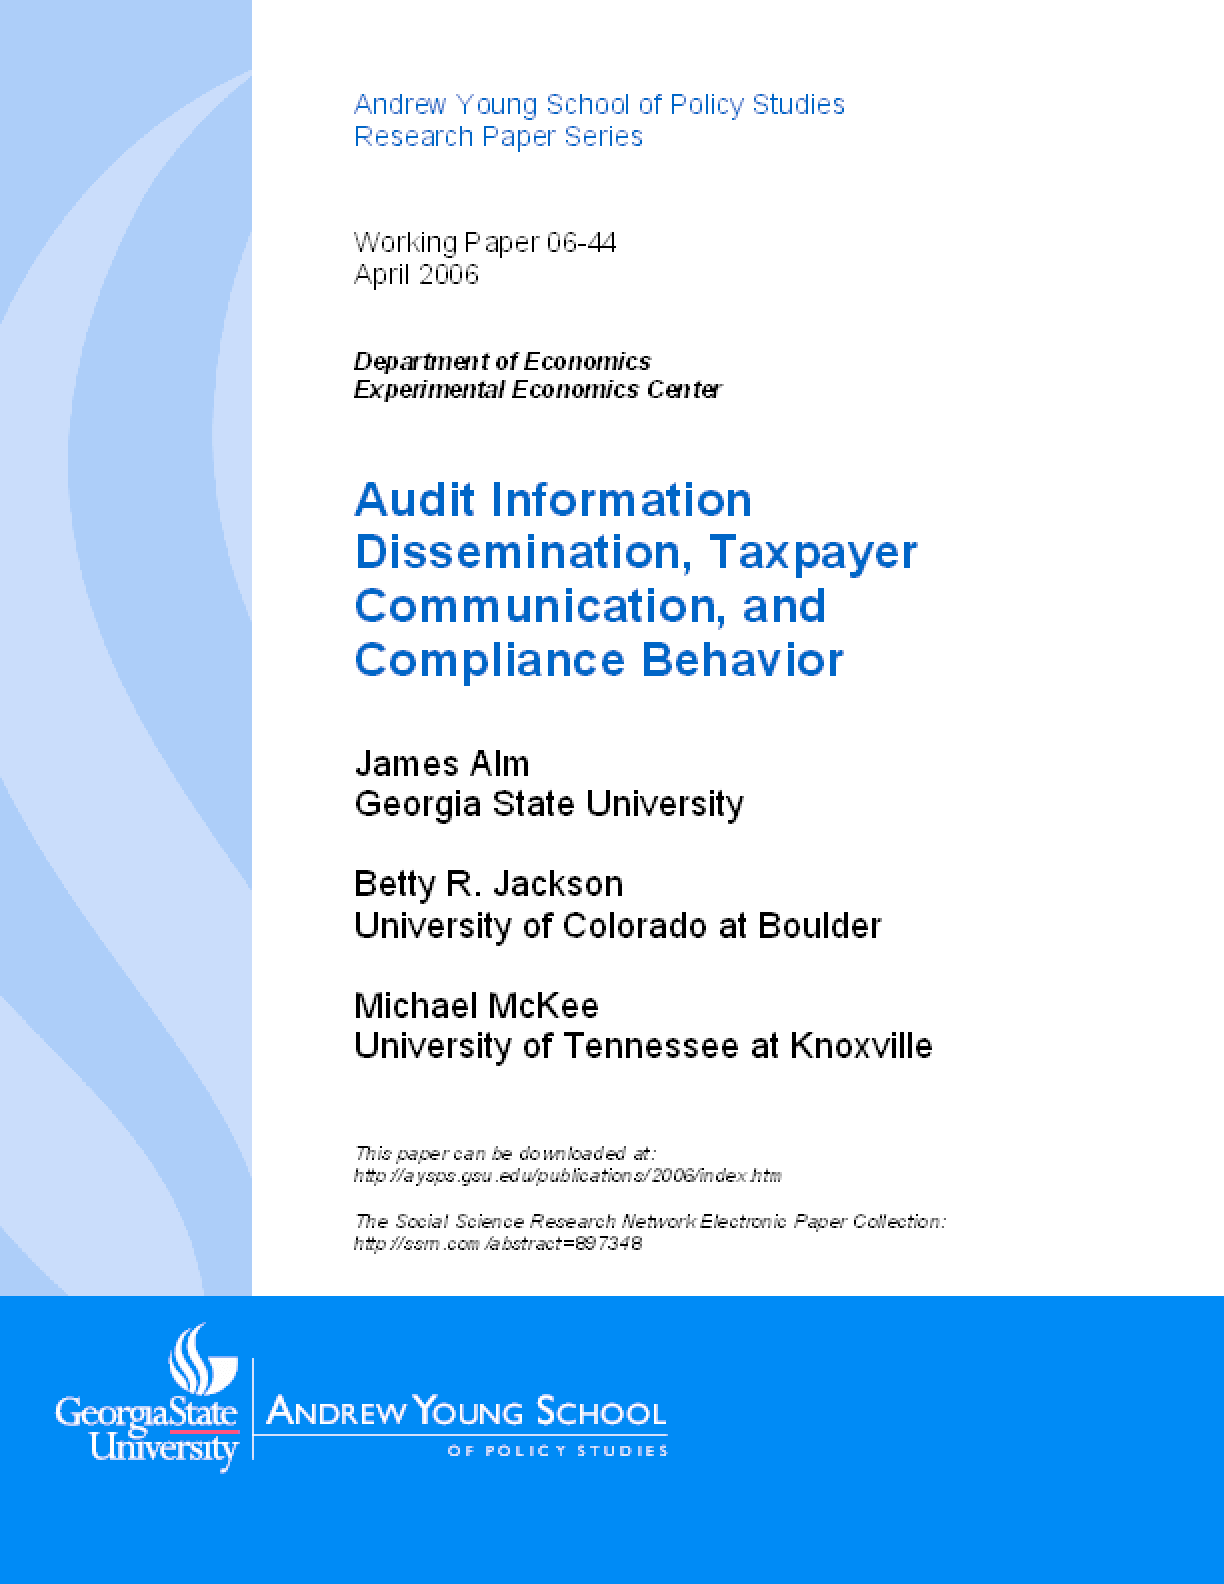 Audit Information Dissemination, Taxpayer Communication, and Compliance Behavior